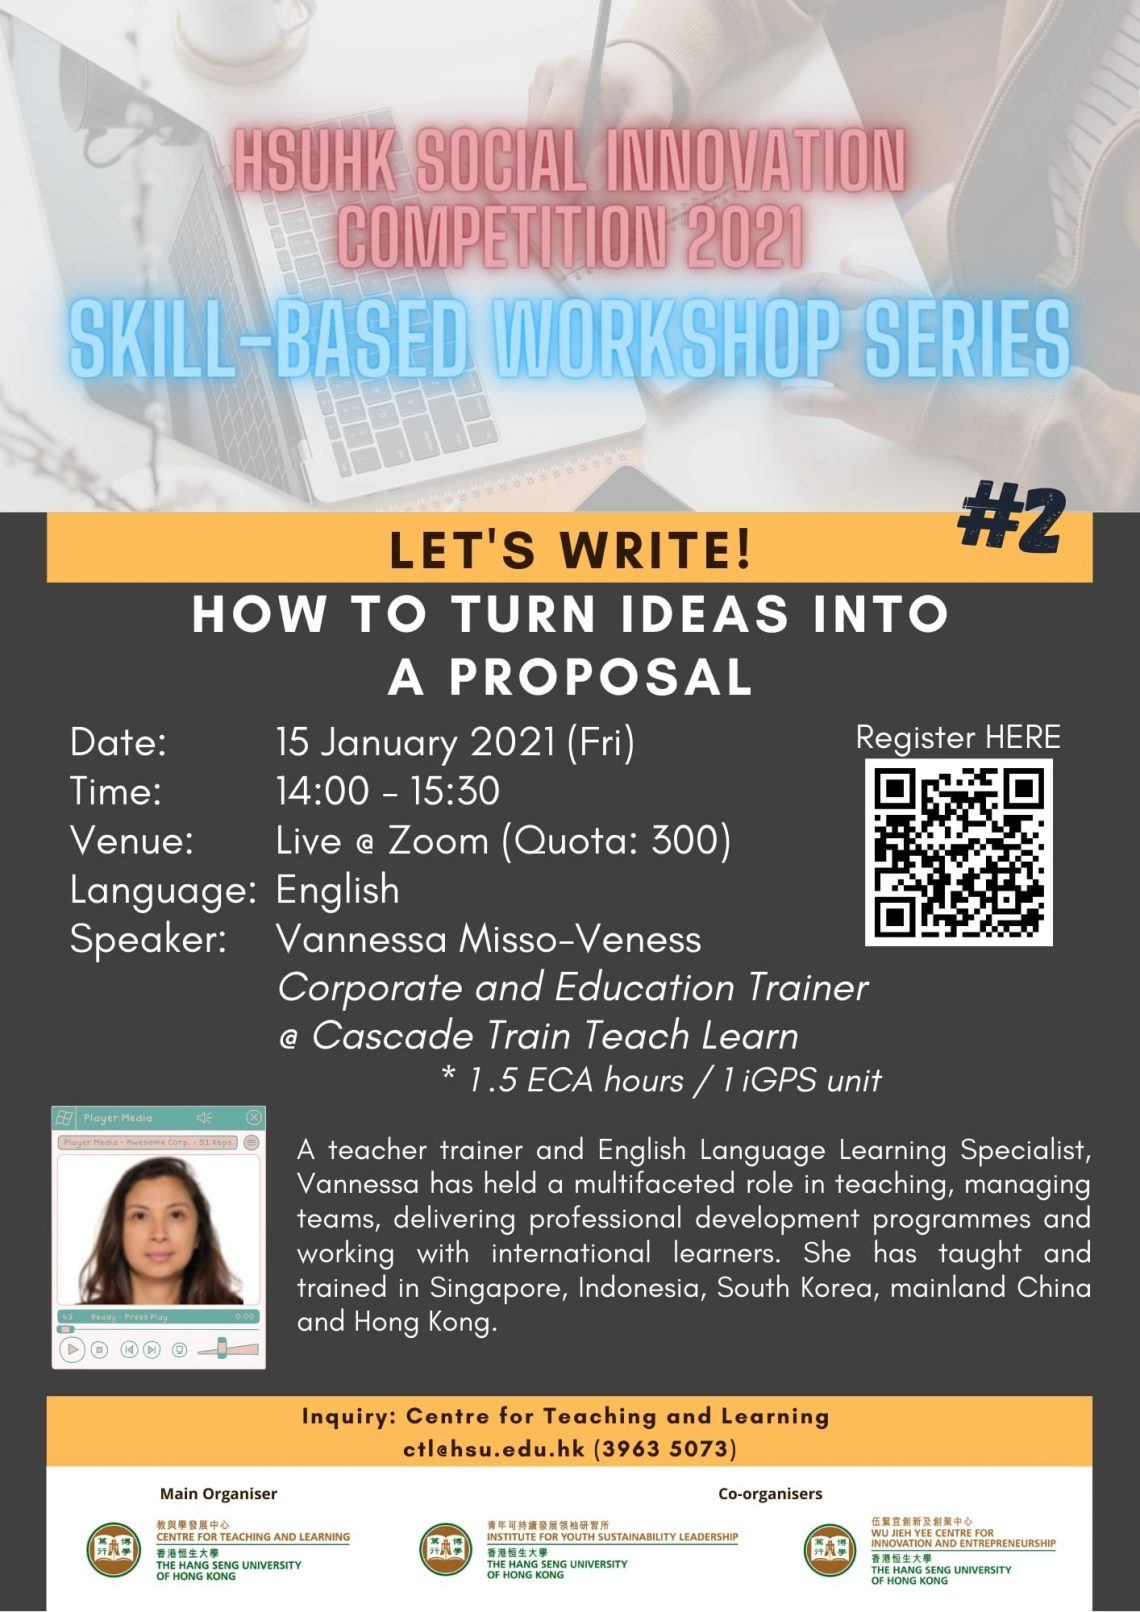 Skill-based Workshop Series #2: Let's Write!: How to Turn Ideas into a Proposal